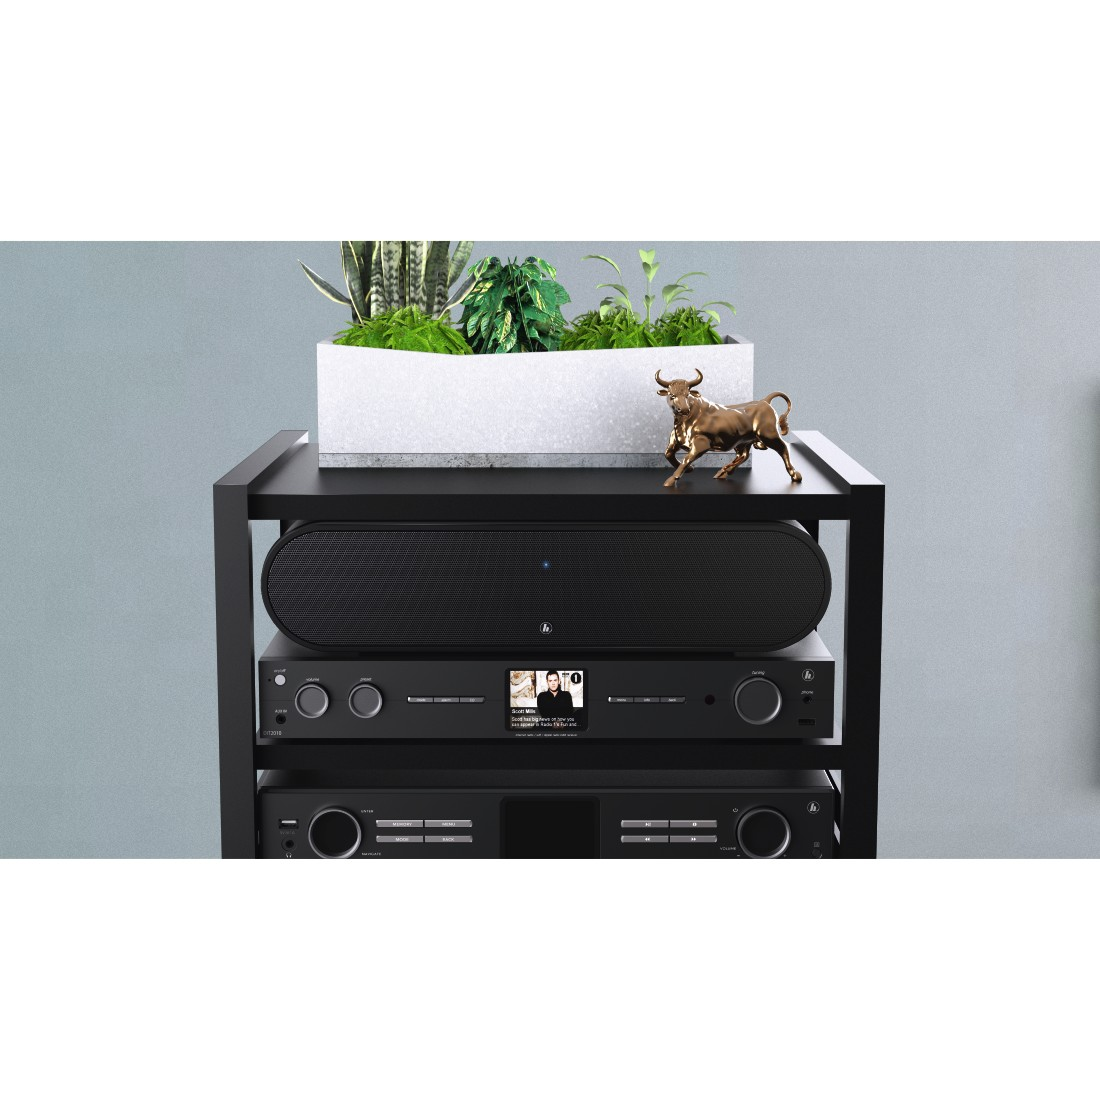 "awx3 High-Res Appliance 3 - Hama, Smart-slim-soundbar 2.1 ""SIRIUM3800ABT"" wireless subwoofer/Alexa/Bluetooth®"